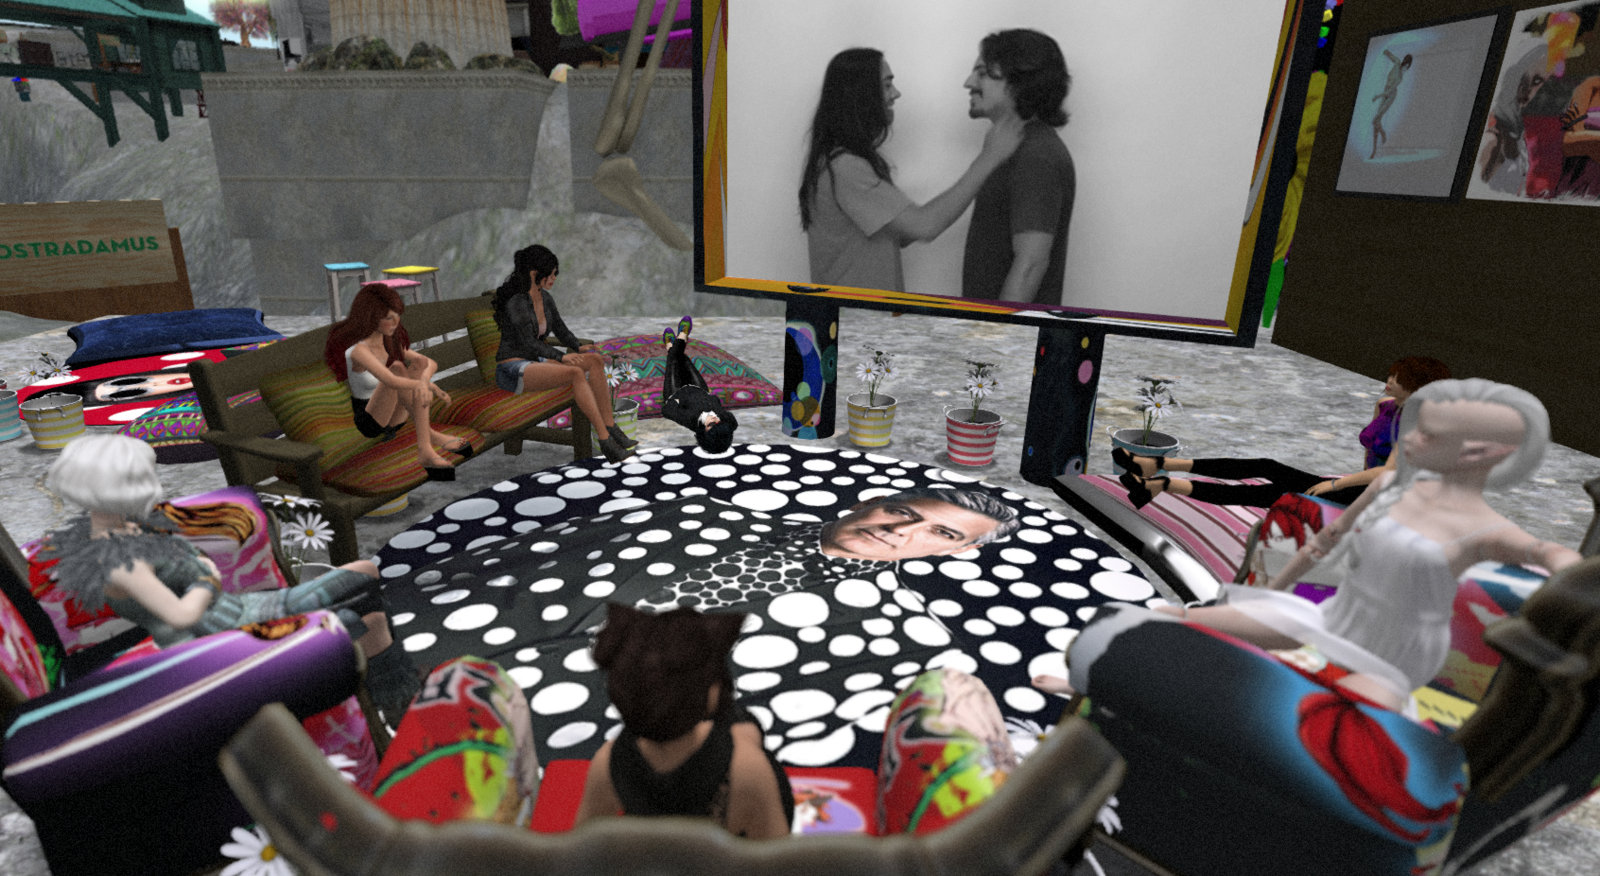 Avatars gathered around a large flat-screen TV and watching art videos from Micol Hebron